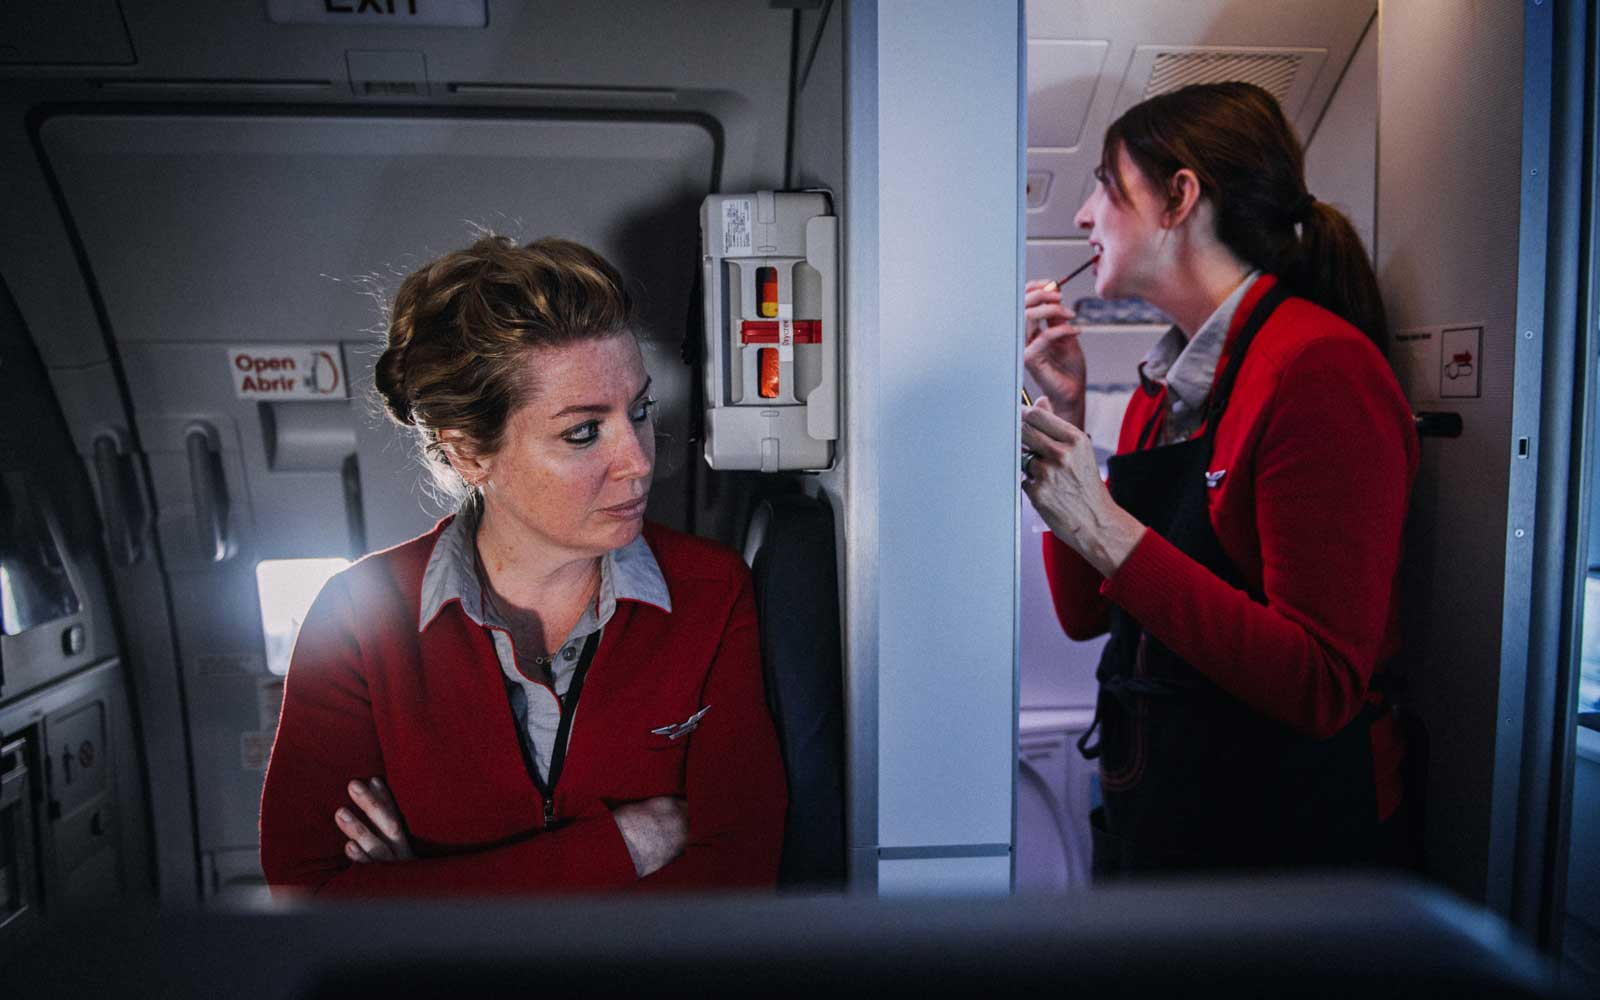 virgin airlines flight attendant sweater